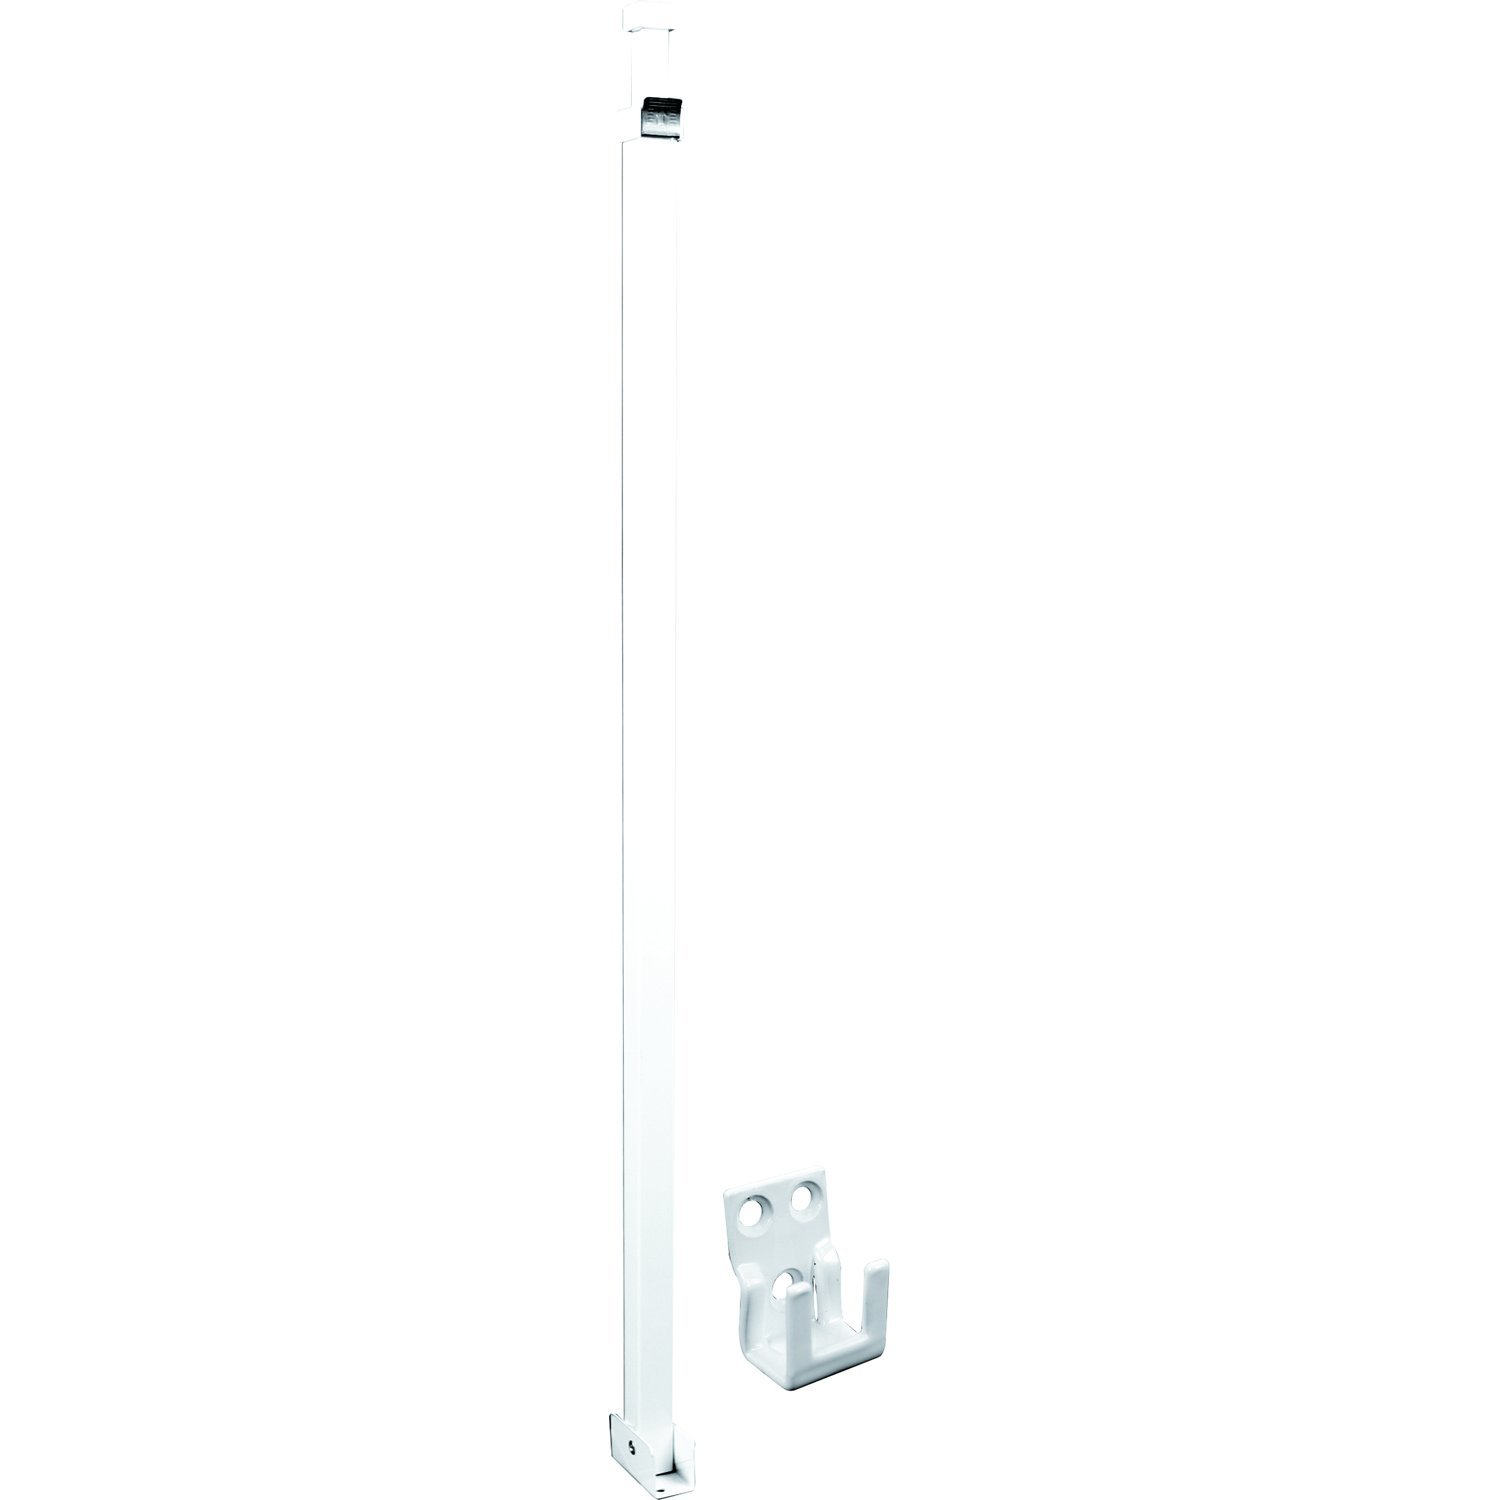 Defender Security U 9921 Security Bar For Sliding Patio Doors, Adjustable, Aluminum Construction With White Finish, Pack of 1 by Prime-Line Products (Image #1)